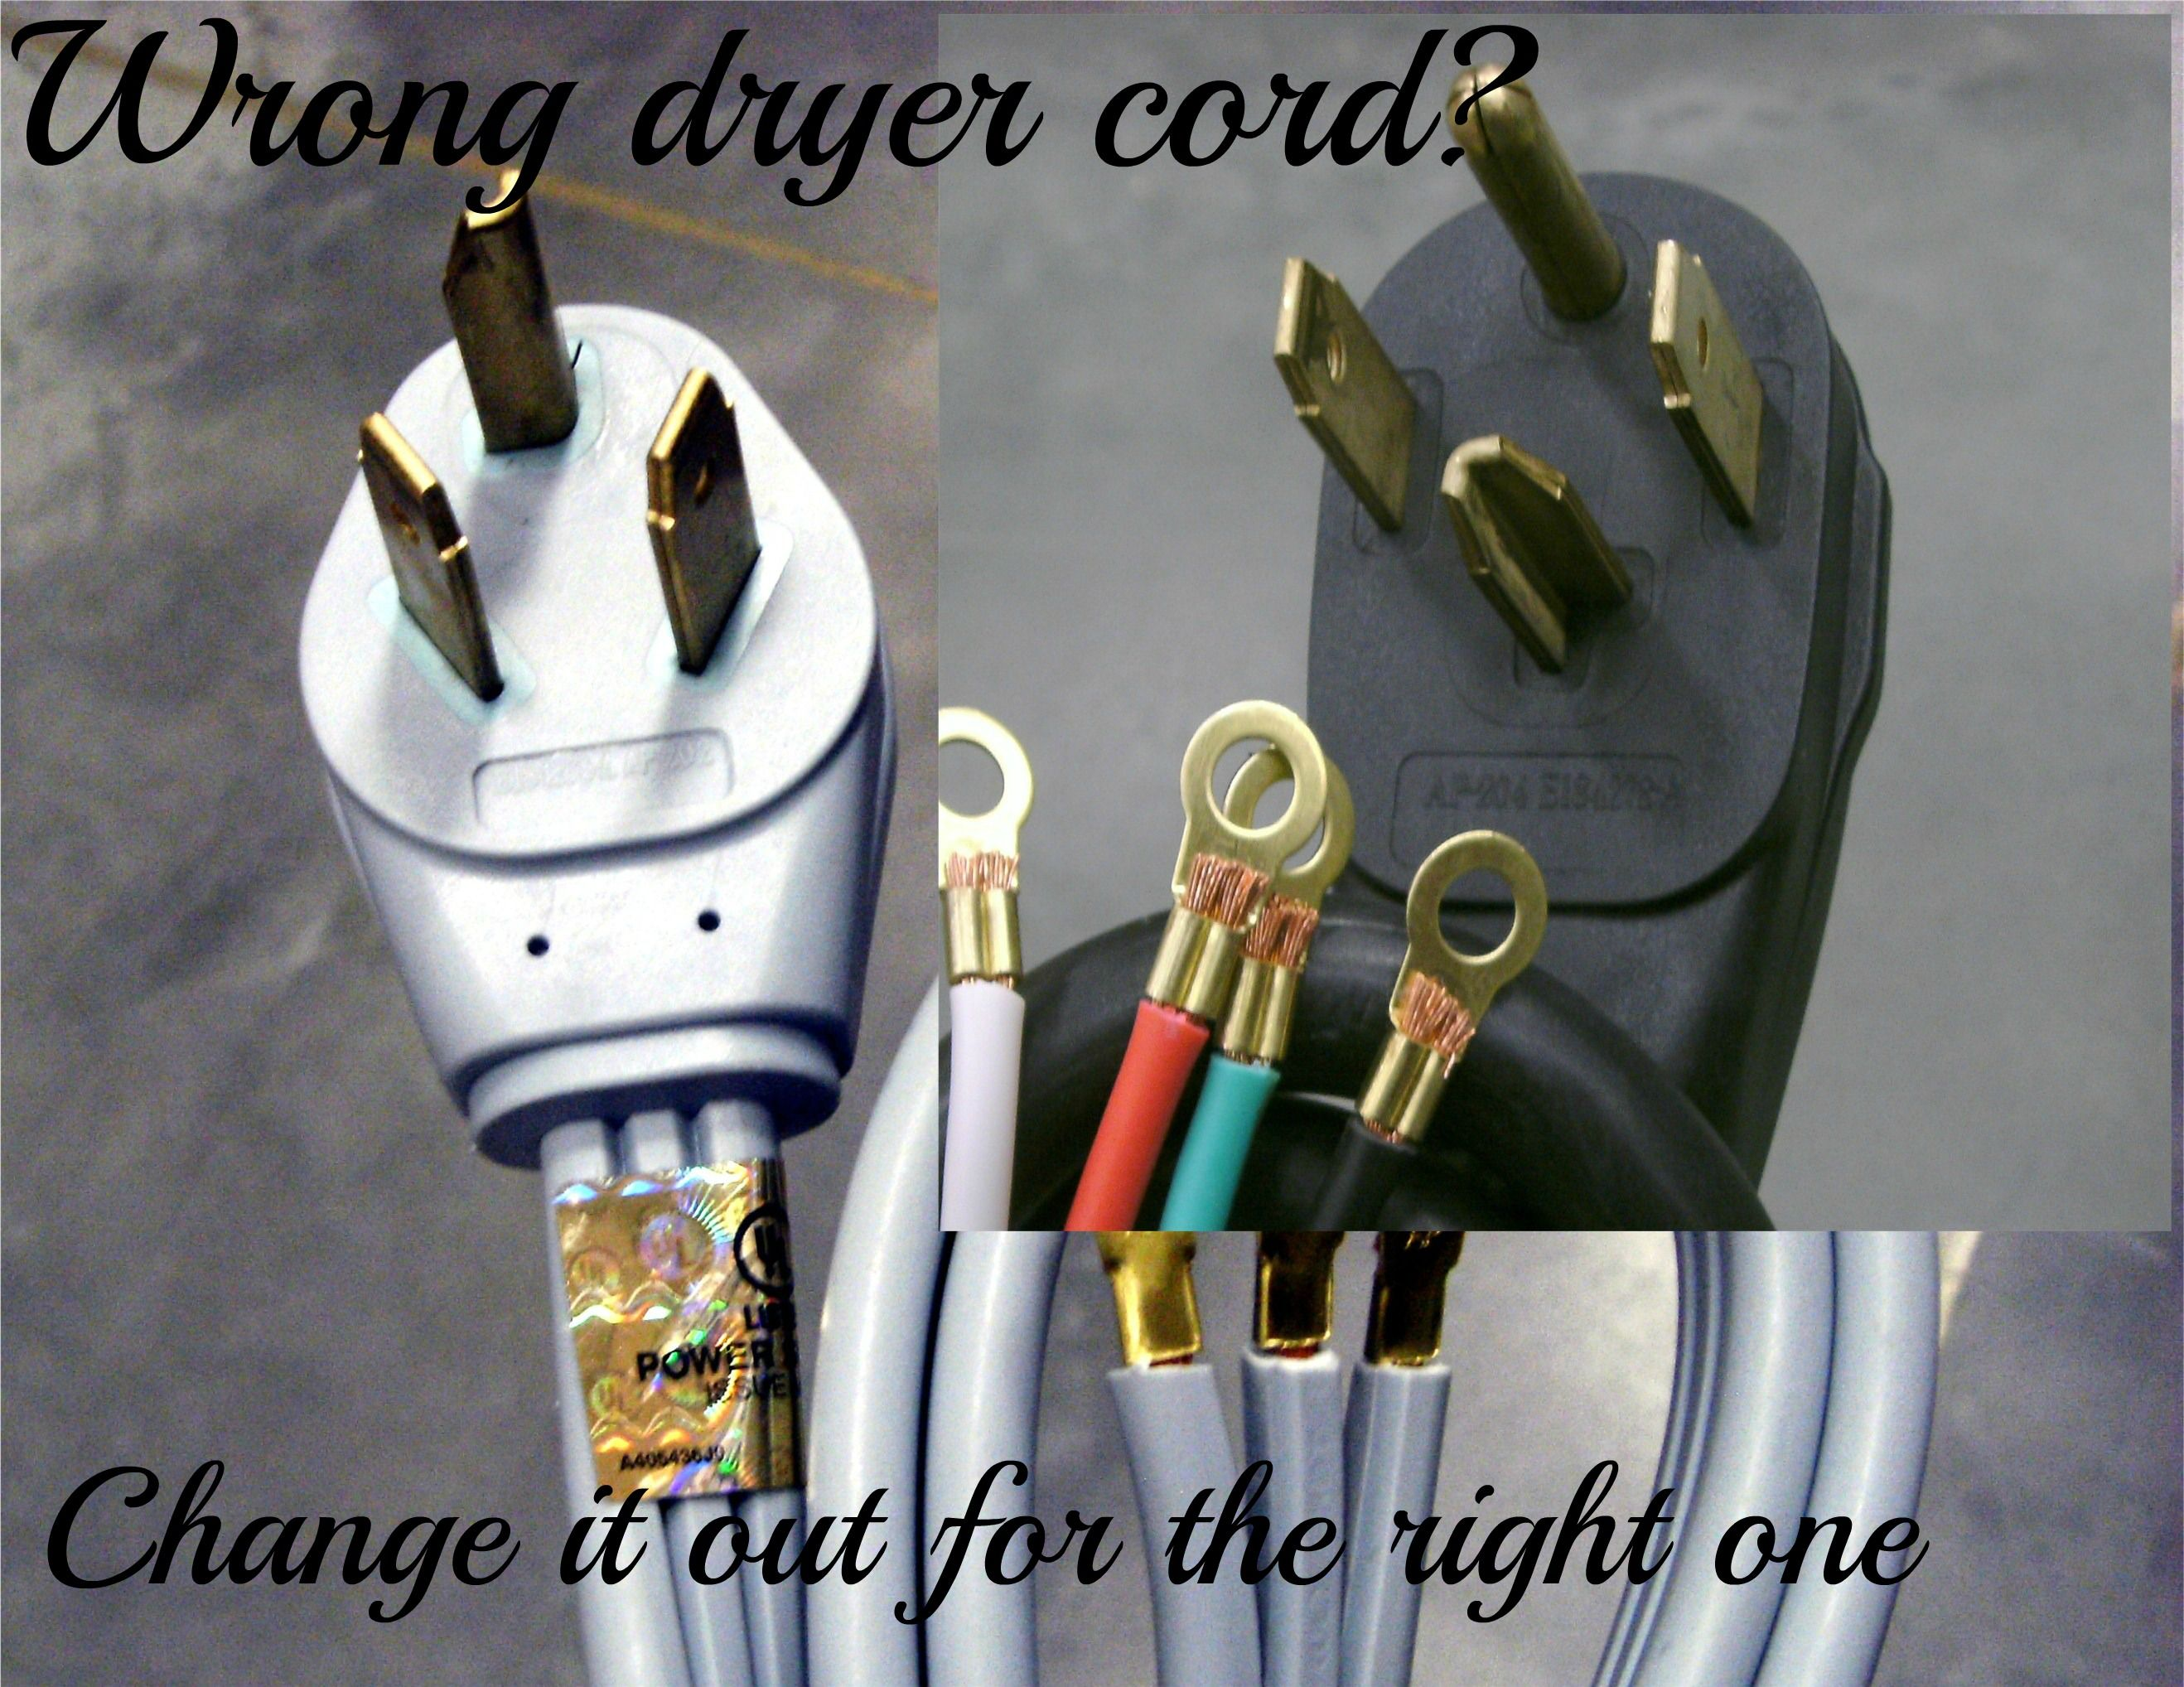 008f3bebc08145f0b0901e4baf420a22 changing a 3 prong to 4 prong dryer plug and cord cord, change 4 prong dryer cord wiring diagram at gsmx.co